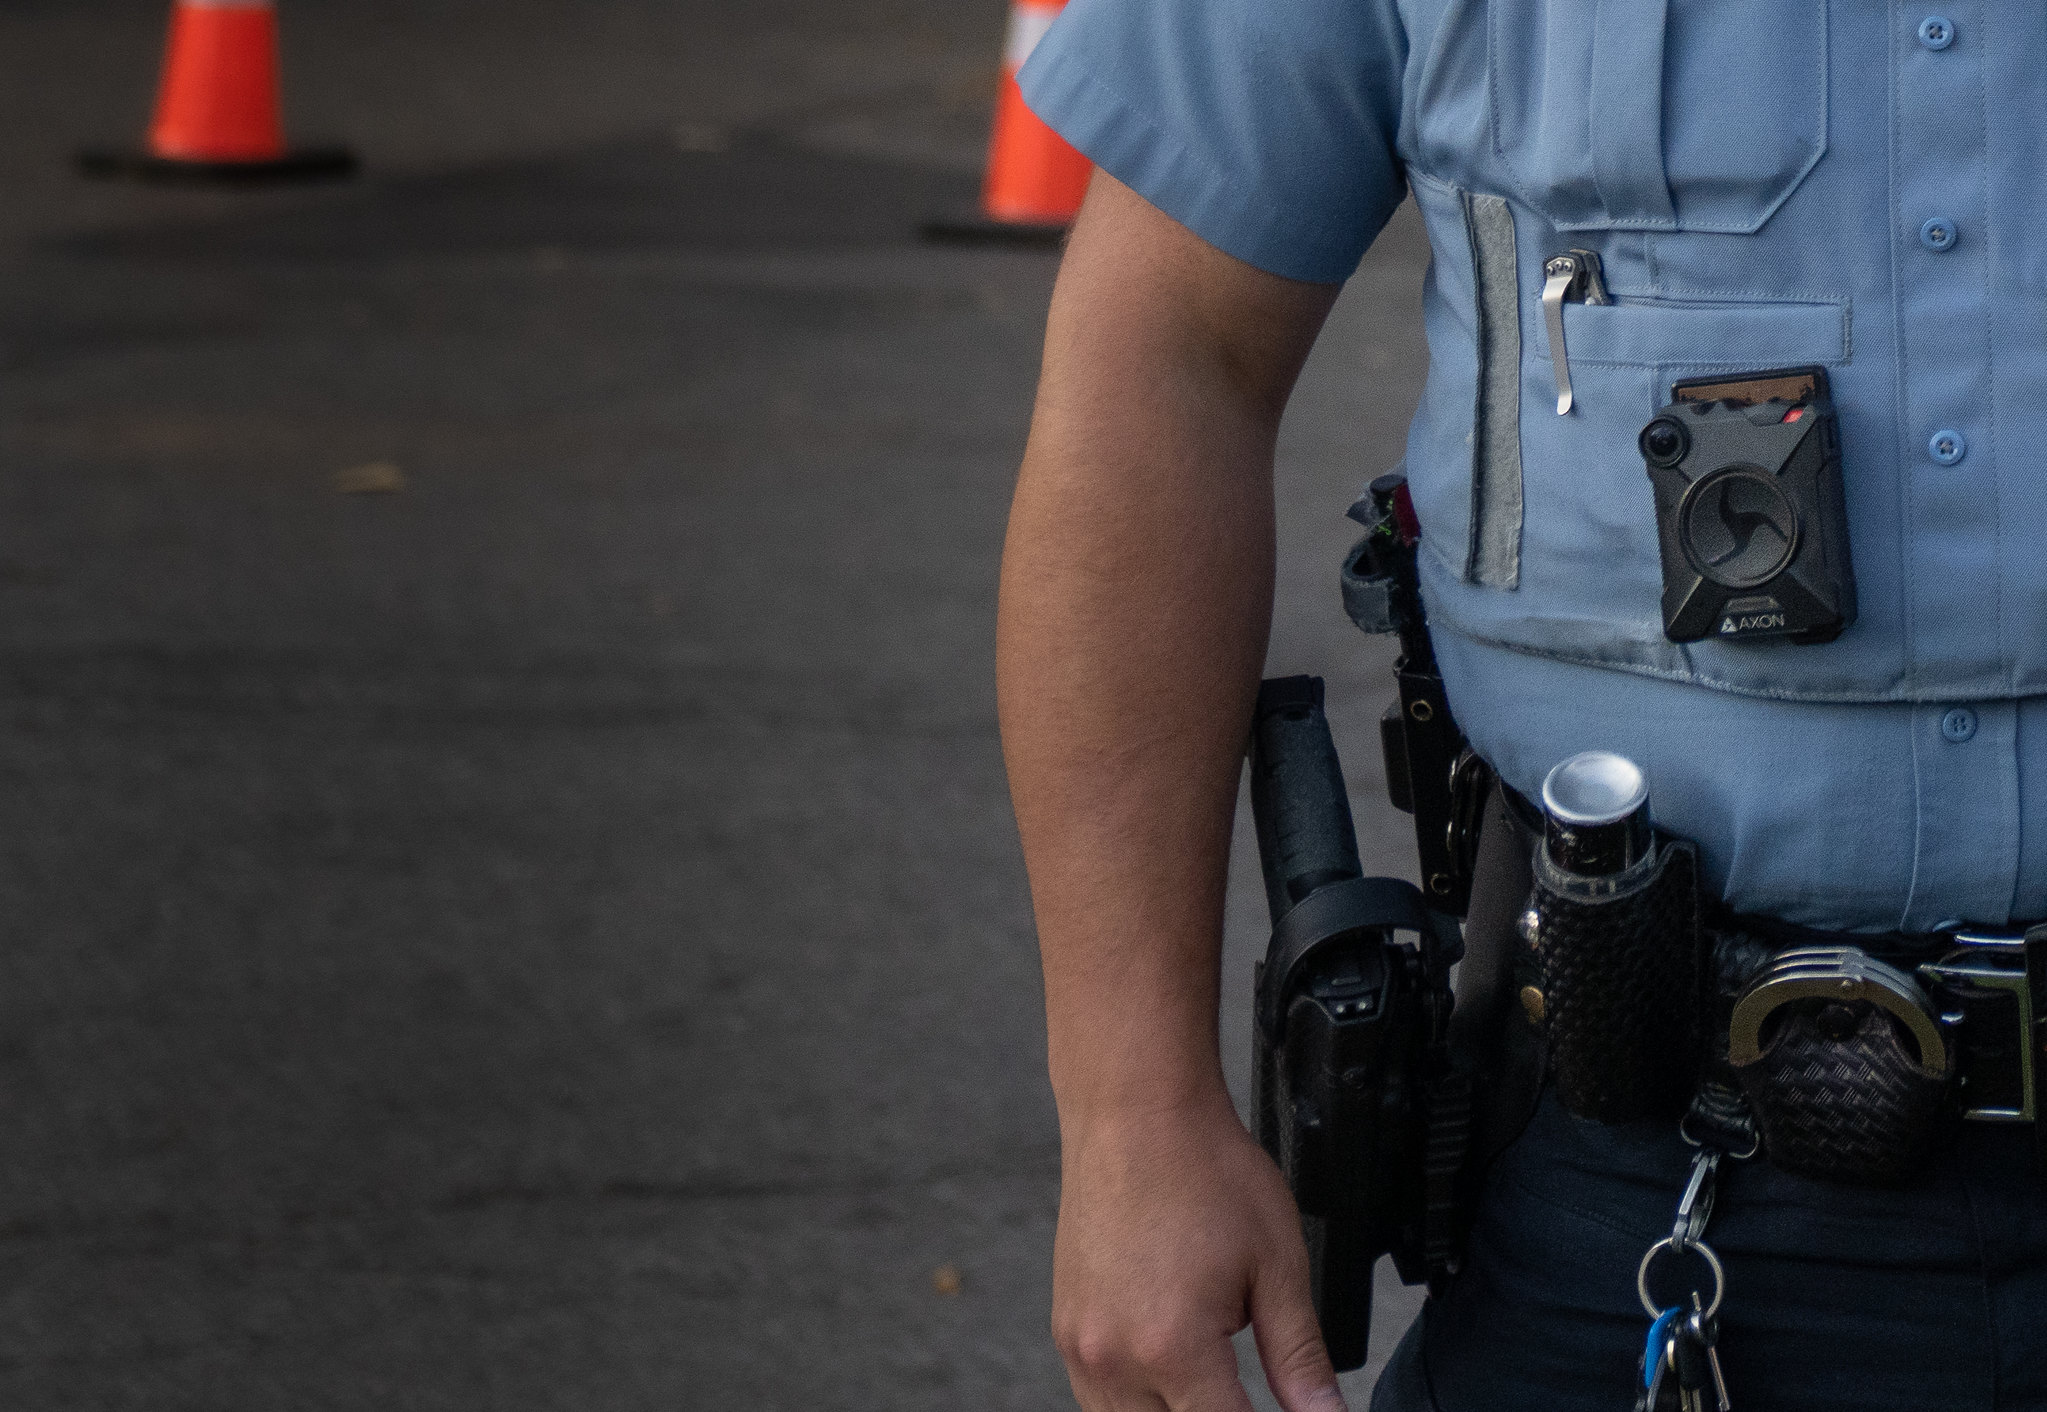 57% of Aurora police bodycam videos contained interrupted footage, audit finds - Colorado Newsline